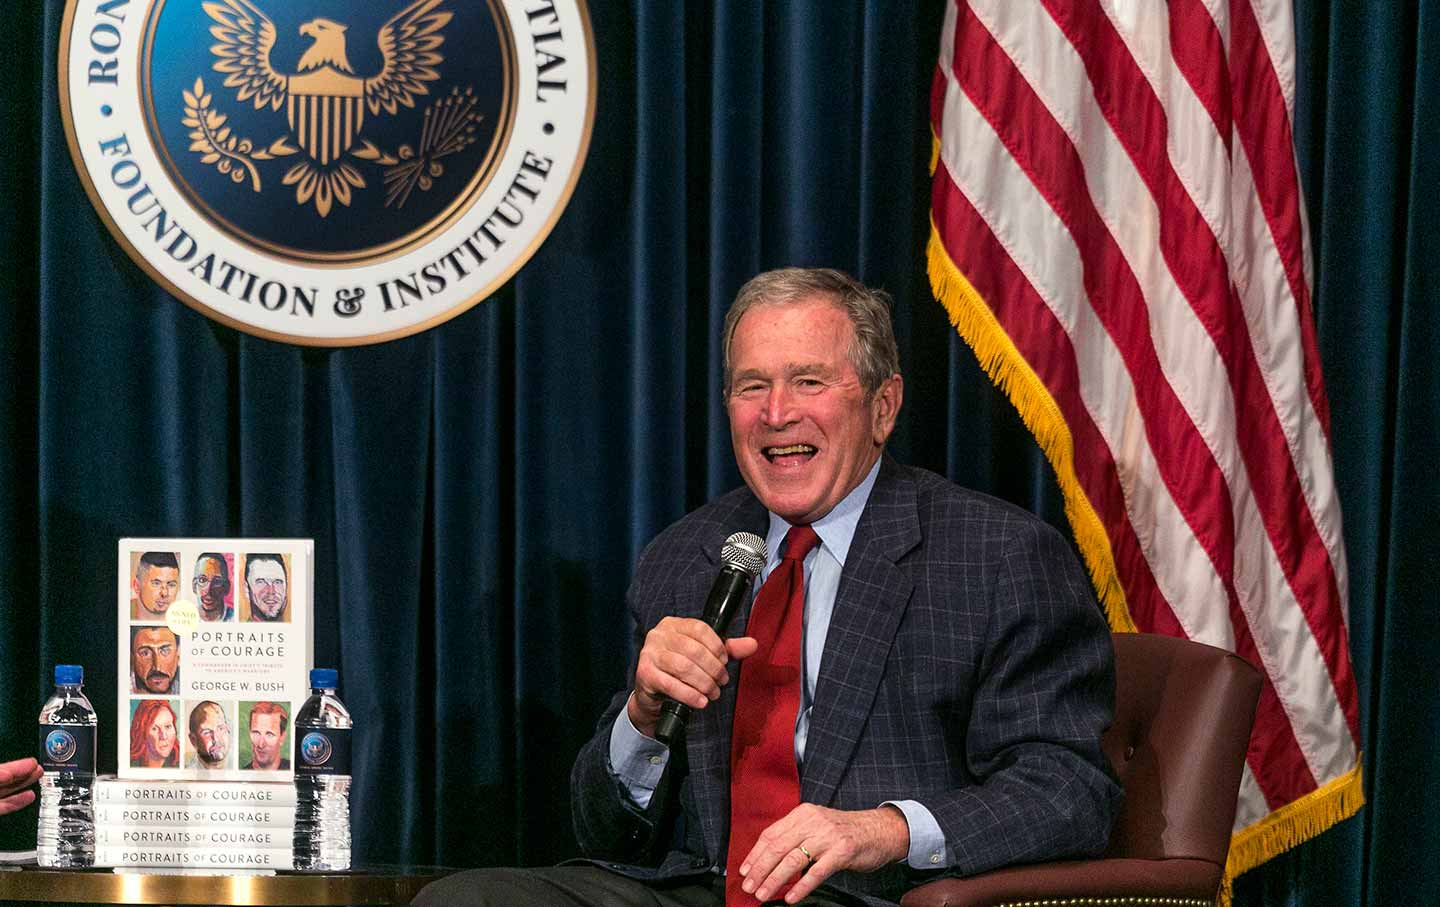 George W. Bush discusses his new book in Simi Valley, California, on March 1, 2017. (AP Photo / Damian Dovarganes)